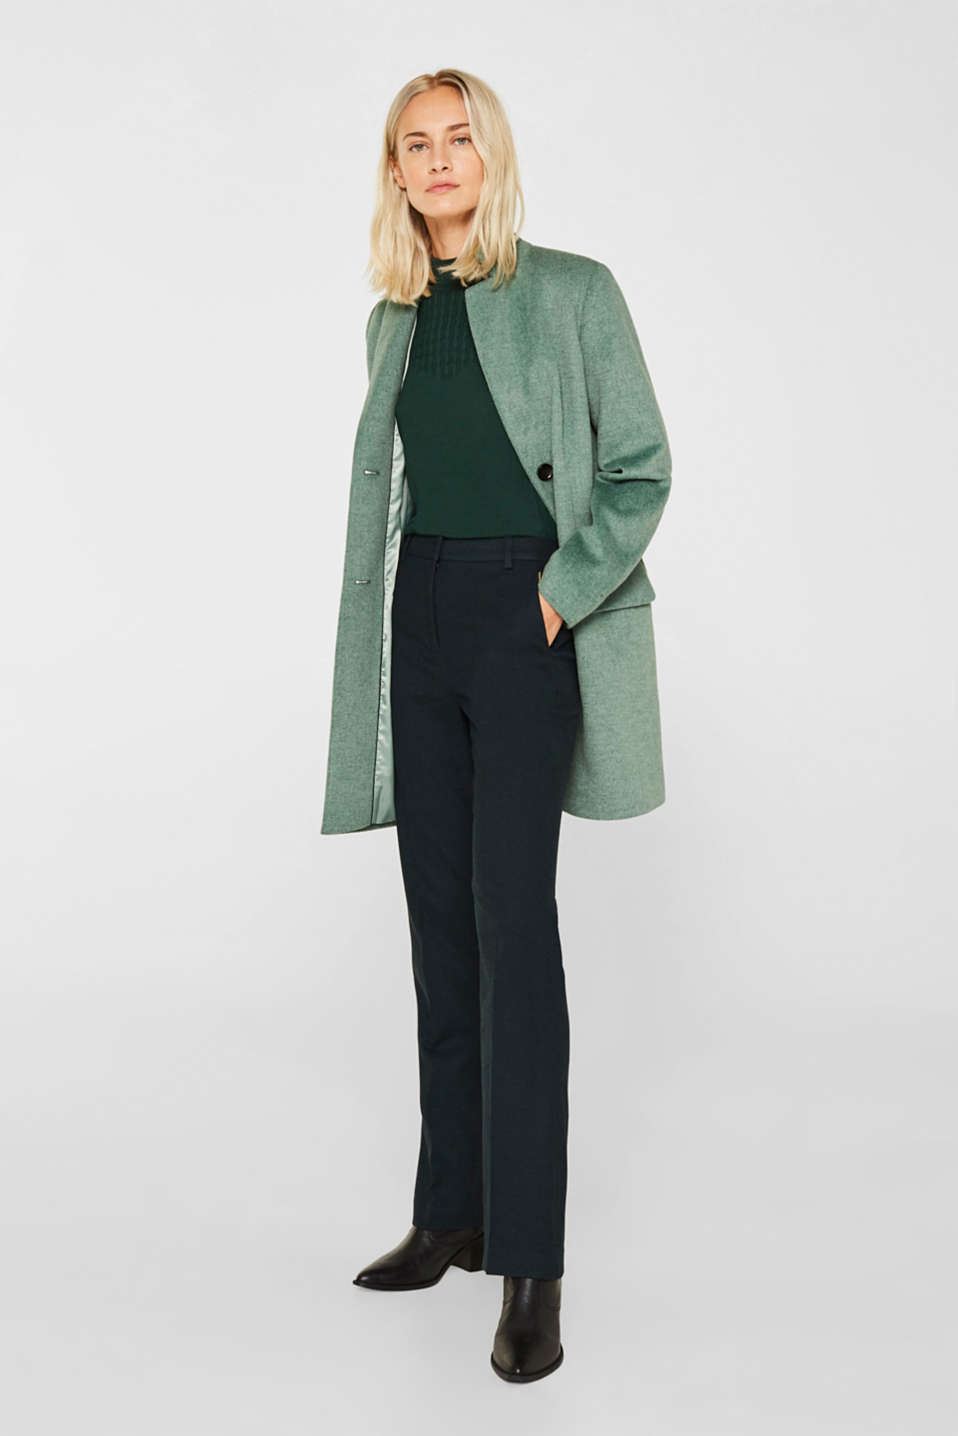 Flannel trousers with stretch for comfort, DARK TEAL GREEN, detail image number 1